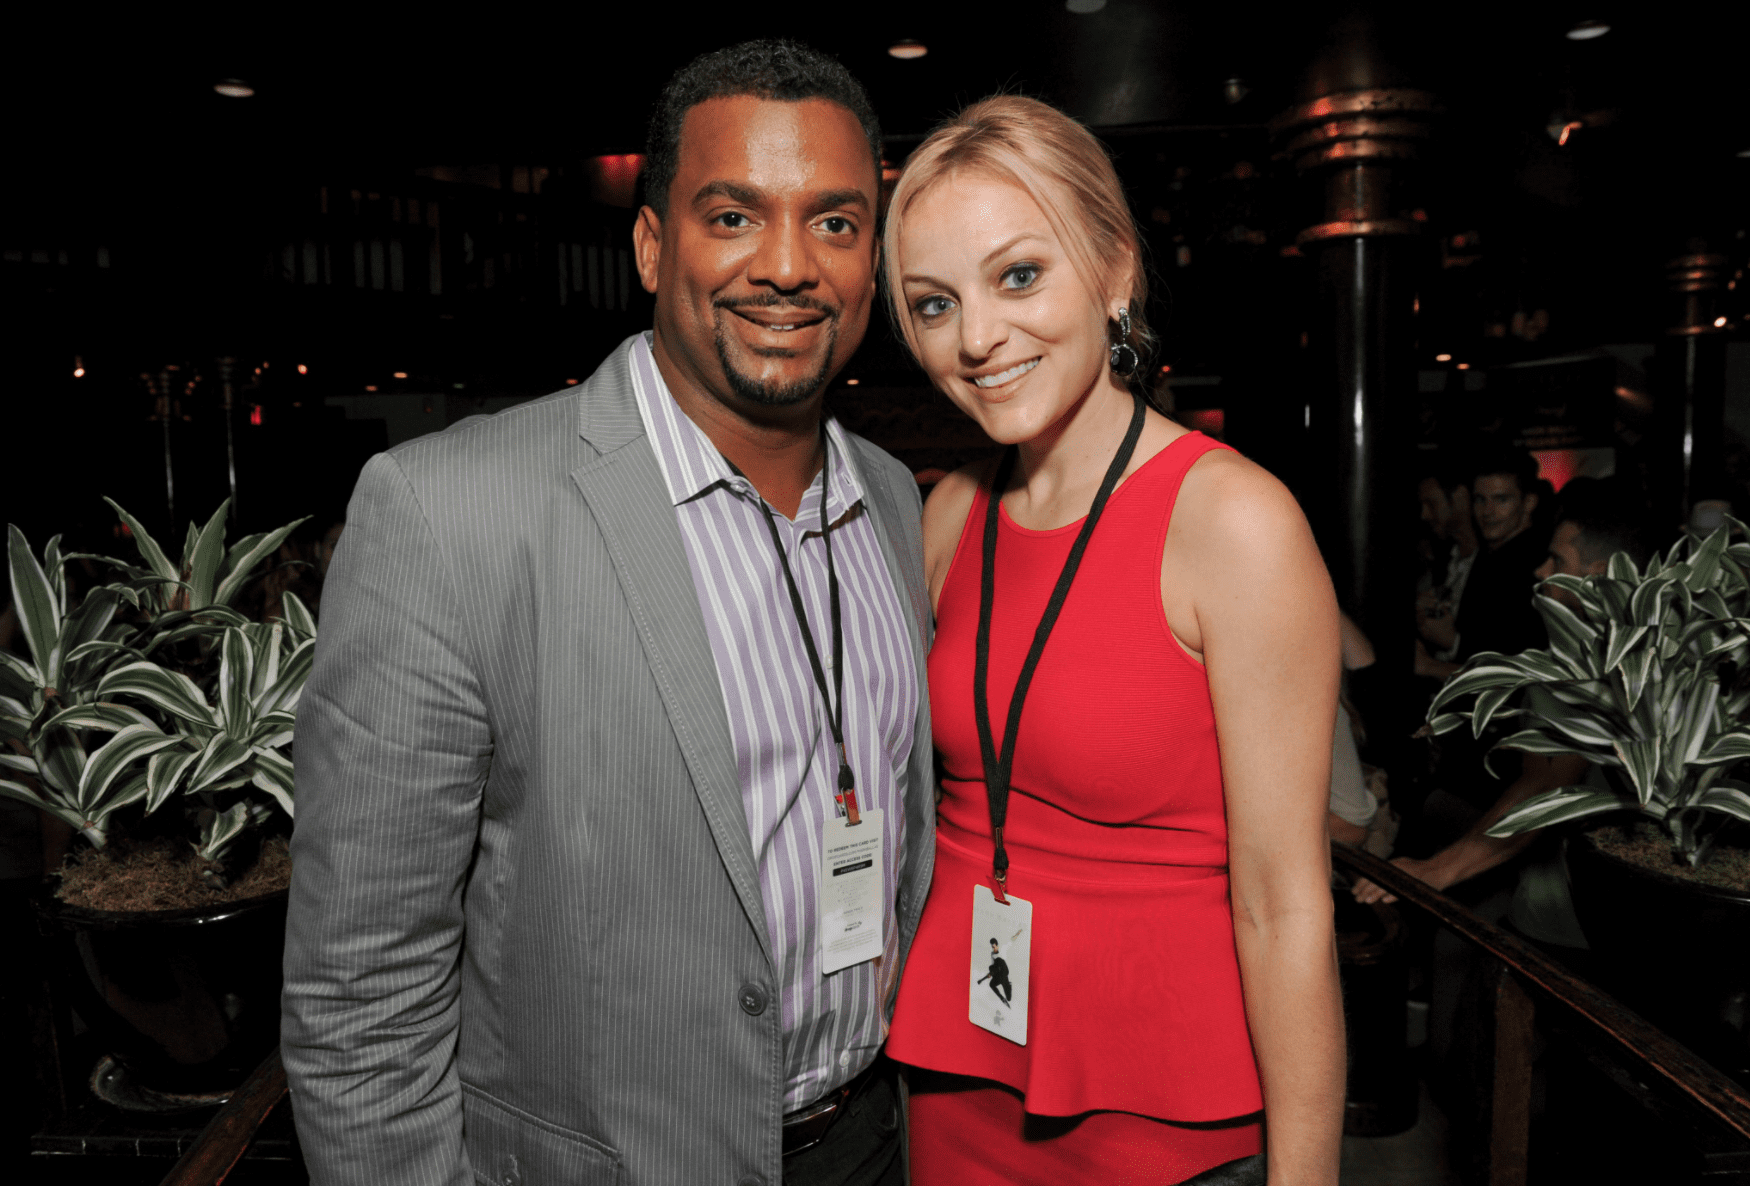 """Alfonso Ribeiro and his wife attending the debut of Mark Ballas' EP """"Kicking Clouds"""" on September 16, 2014 in California. Photo by Allen Berezovsky. 